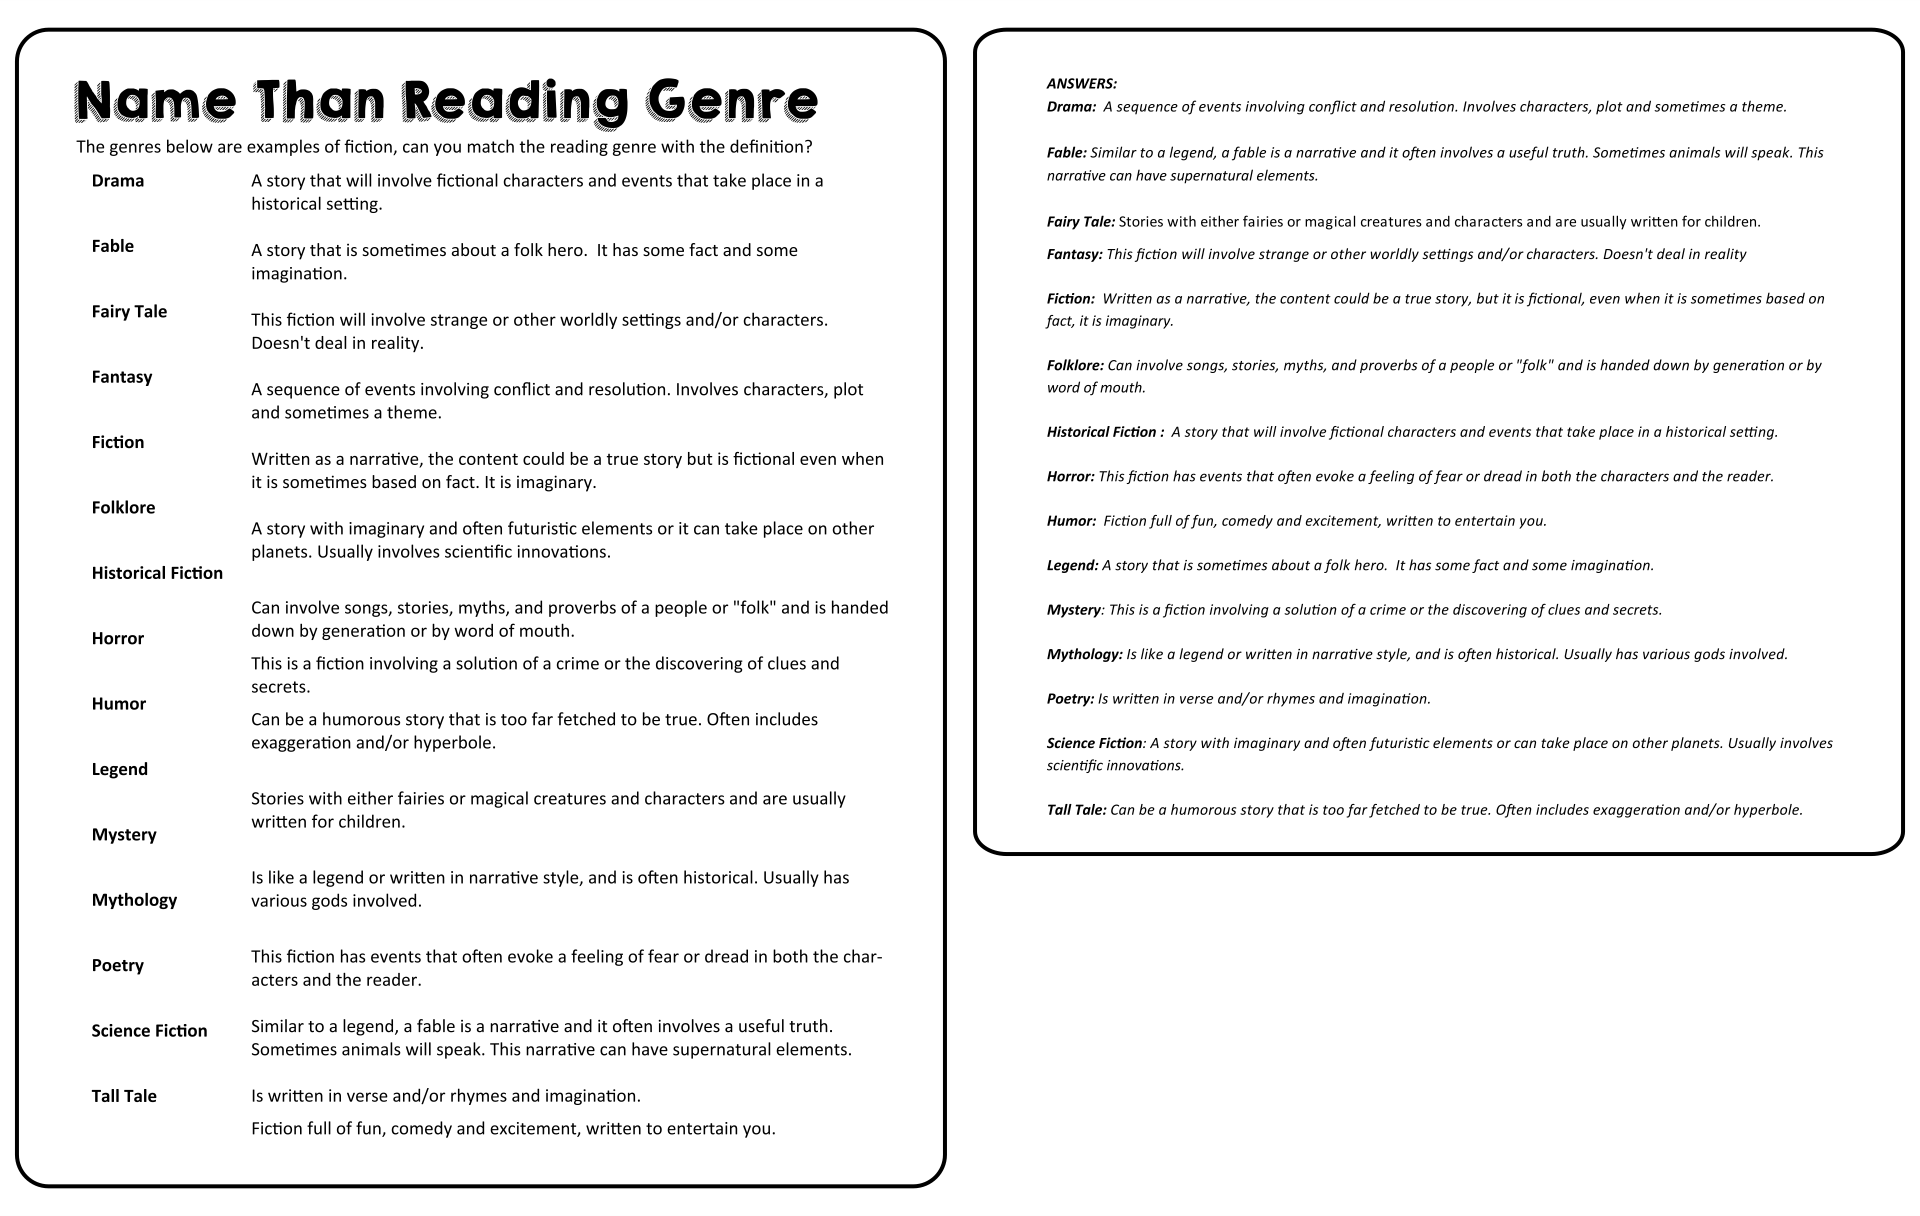 Name That Genre Worksheet Answers